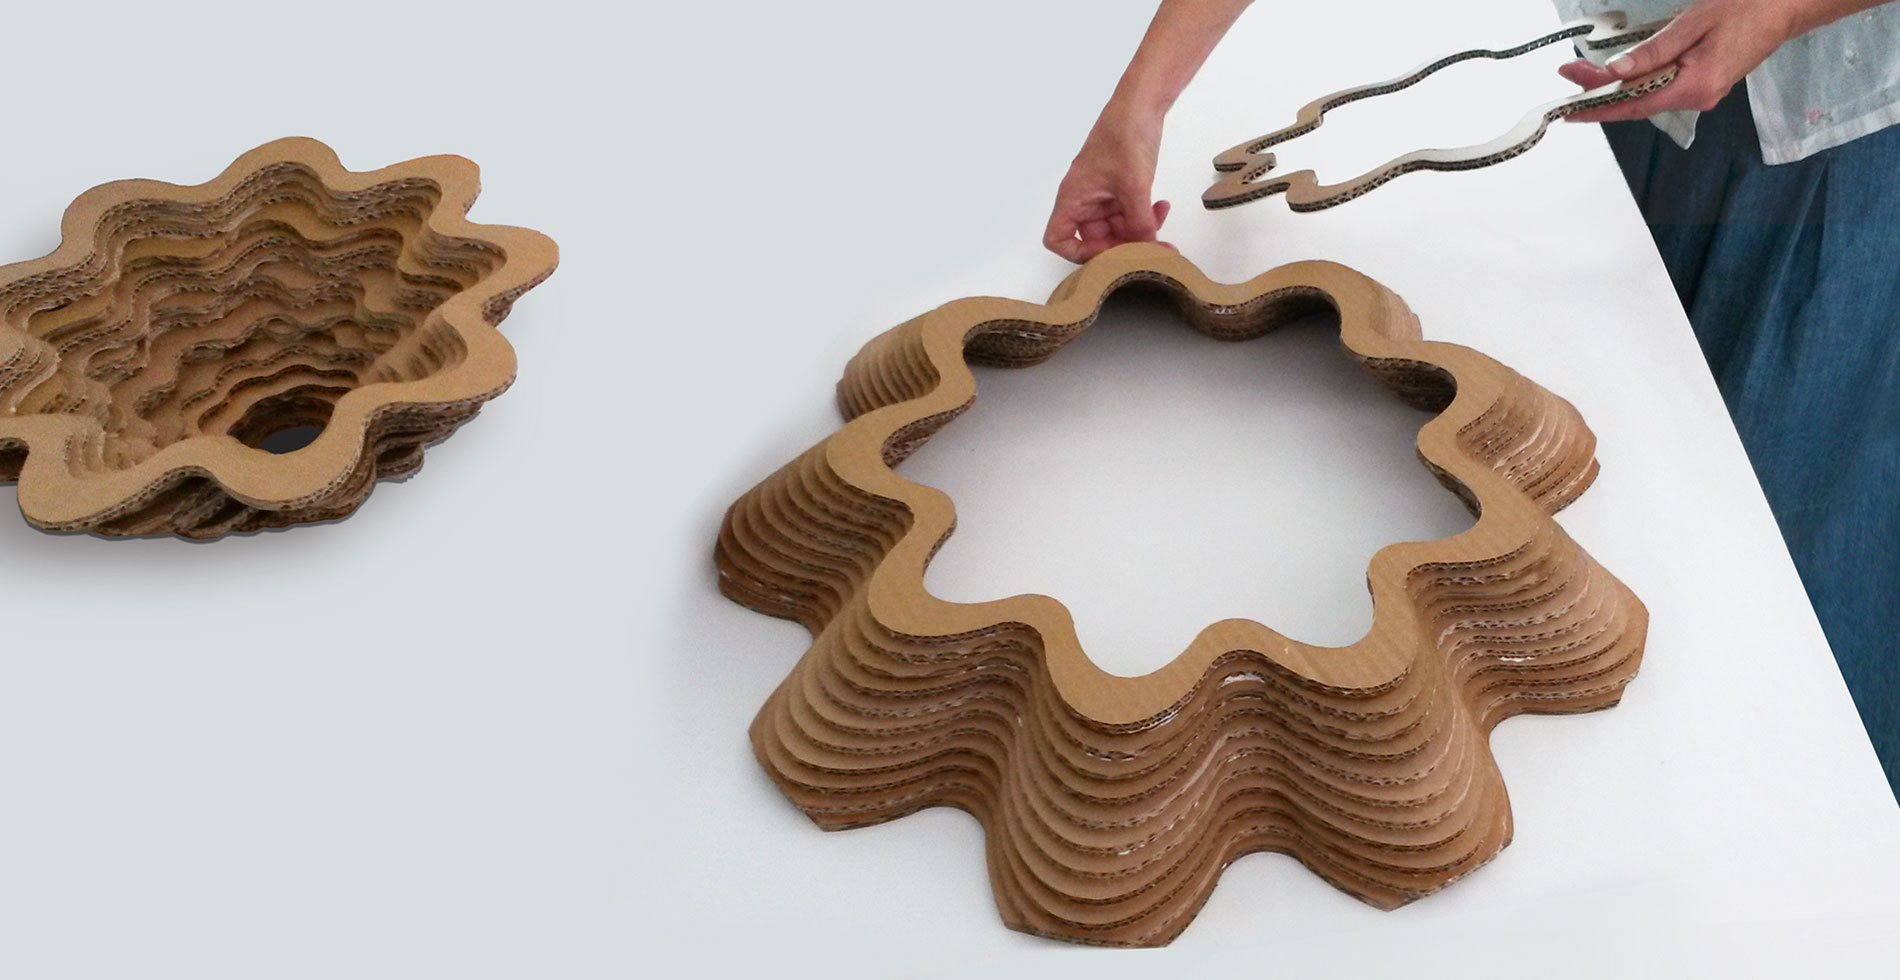 Italiana lamps made of recycled cardboard | Sustainable design by Antonio Pascale for eetico - Made in Italy